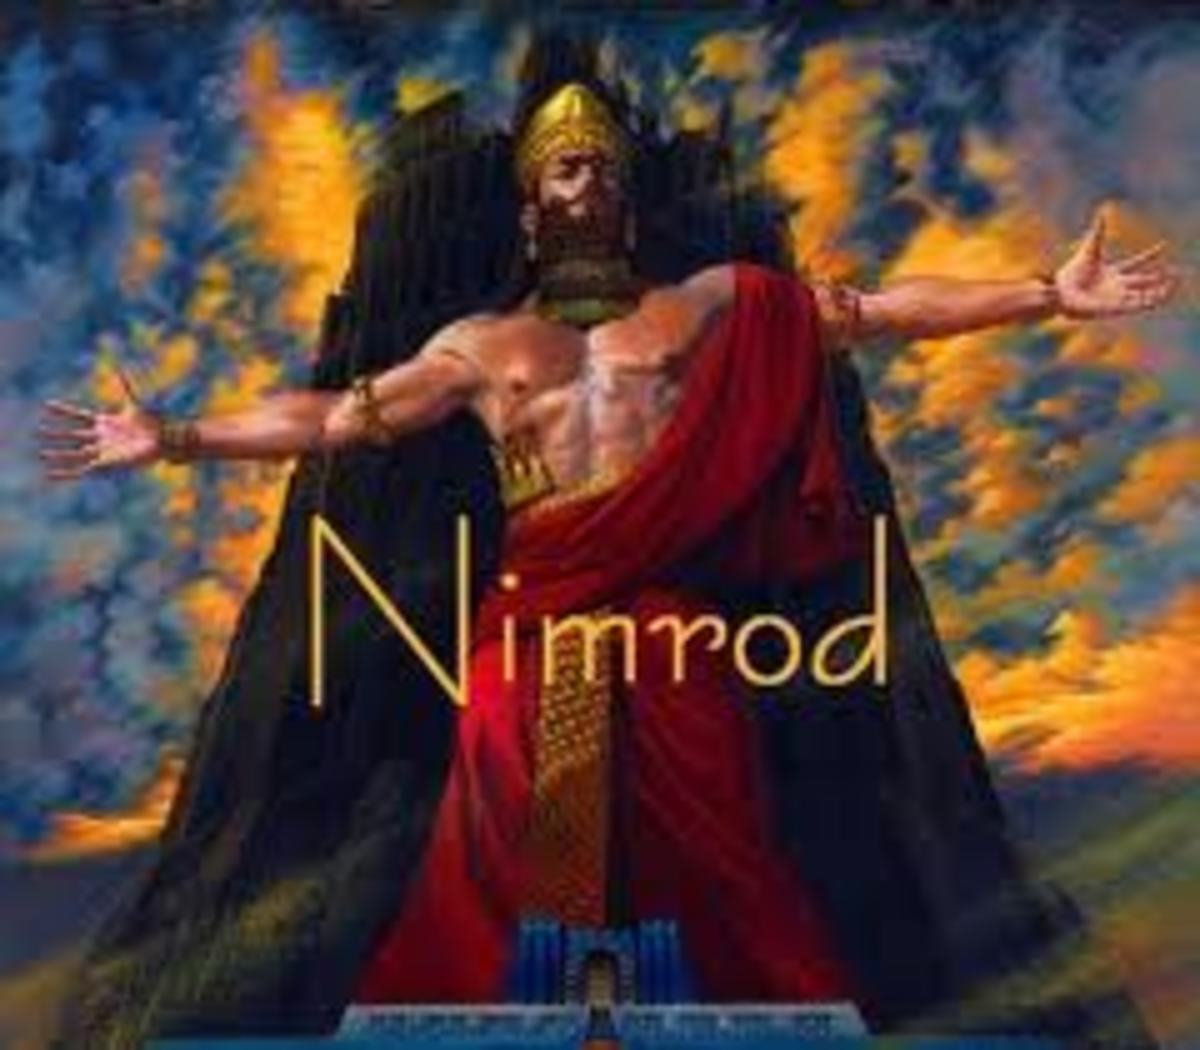 NIMROD THE WORLDS FIRST TYRANT AND FORERUNNER OF THE ANTICHRIST